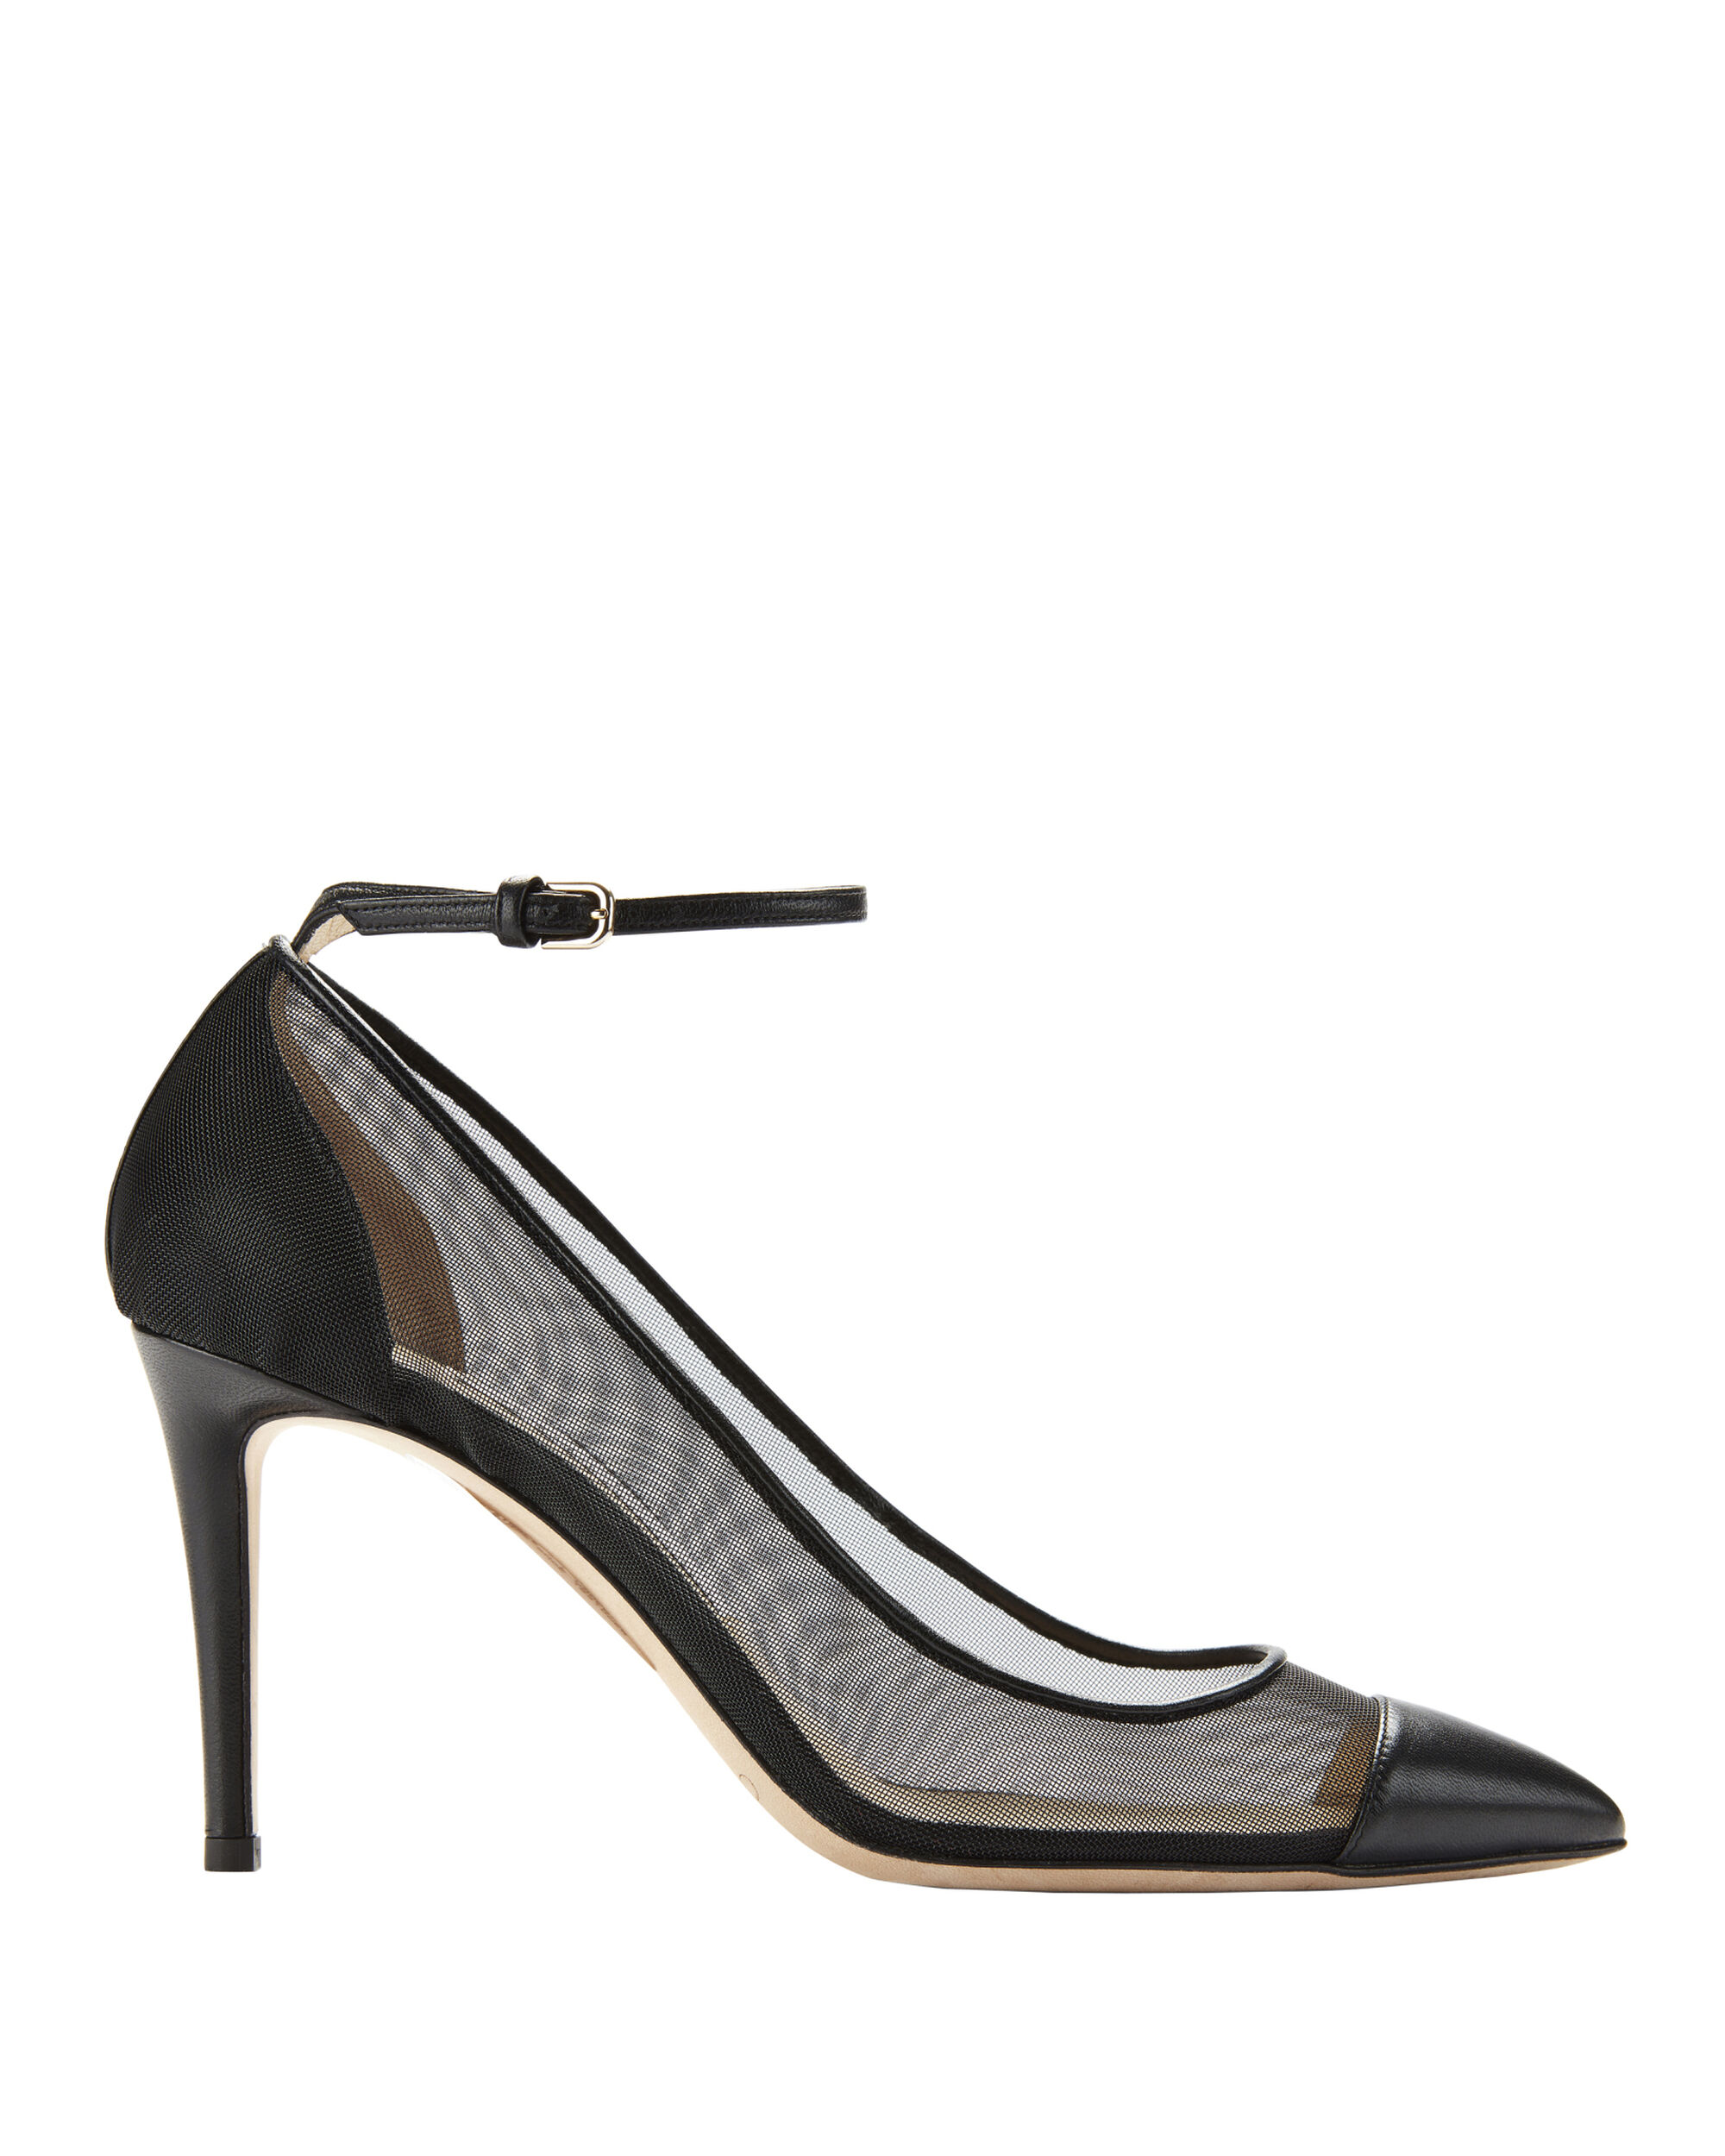 Tower Ankle Strap Pumps, BLACK, hi-res